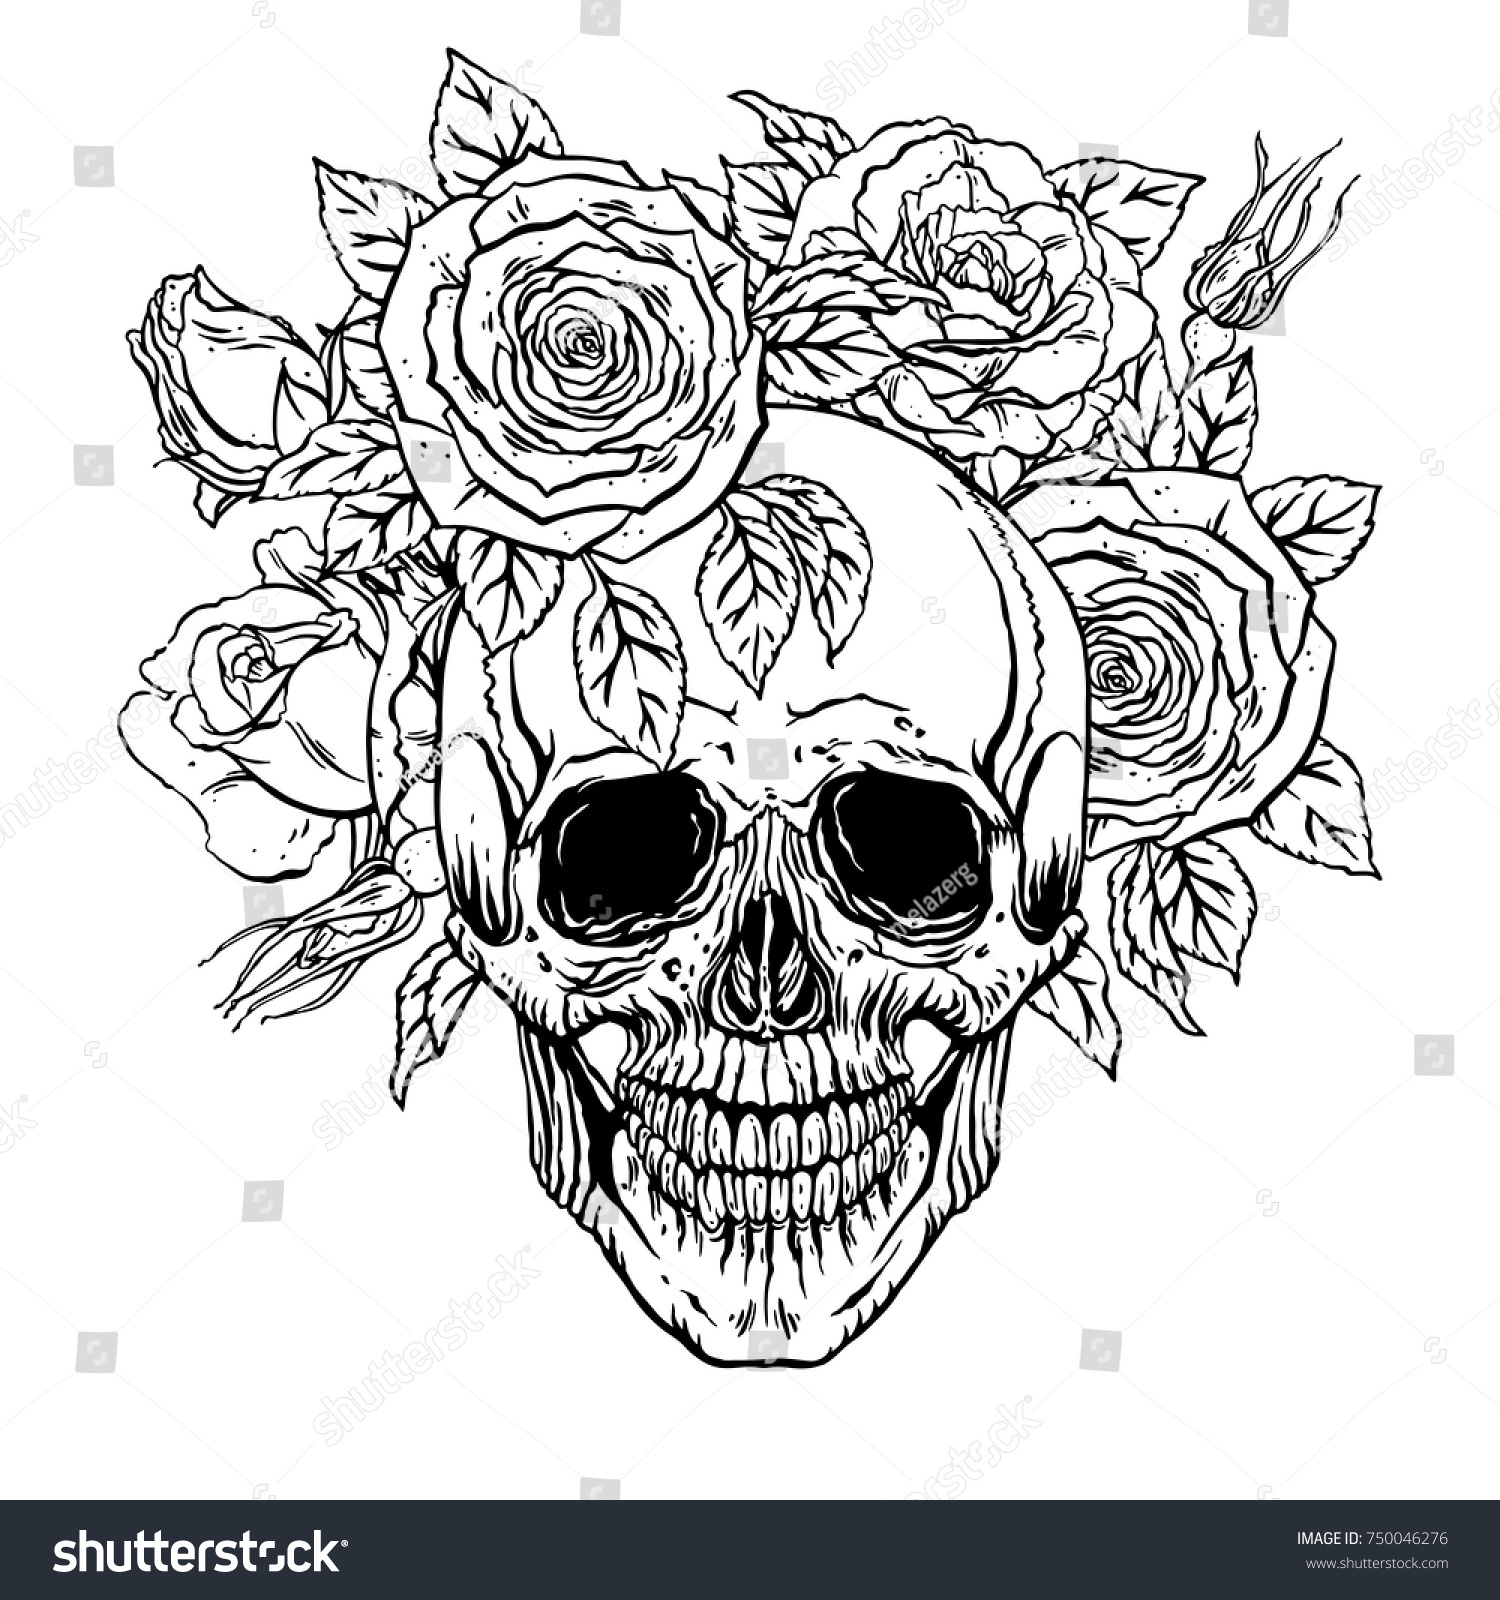 Hand Drawn Illustration Of Anatomy Human Skull With A Lower Jaw And